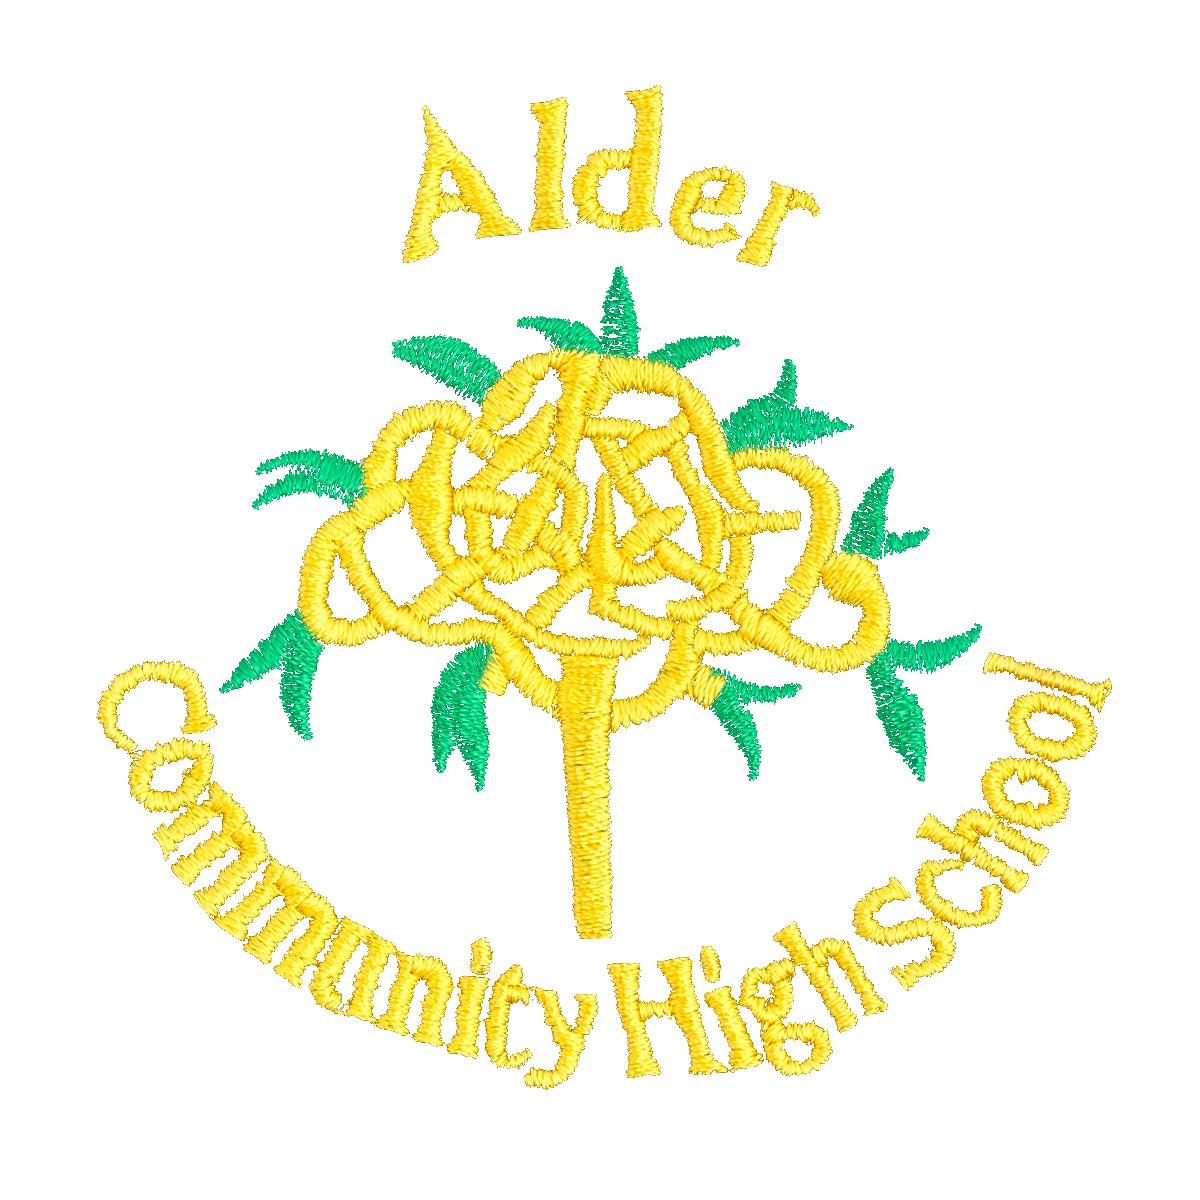 Alder High Community School